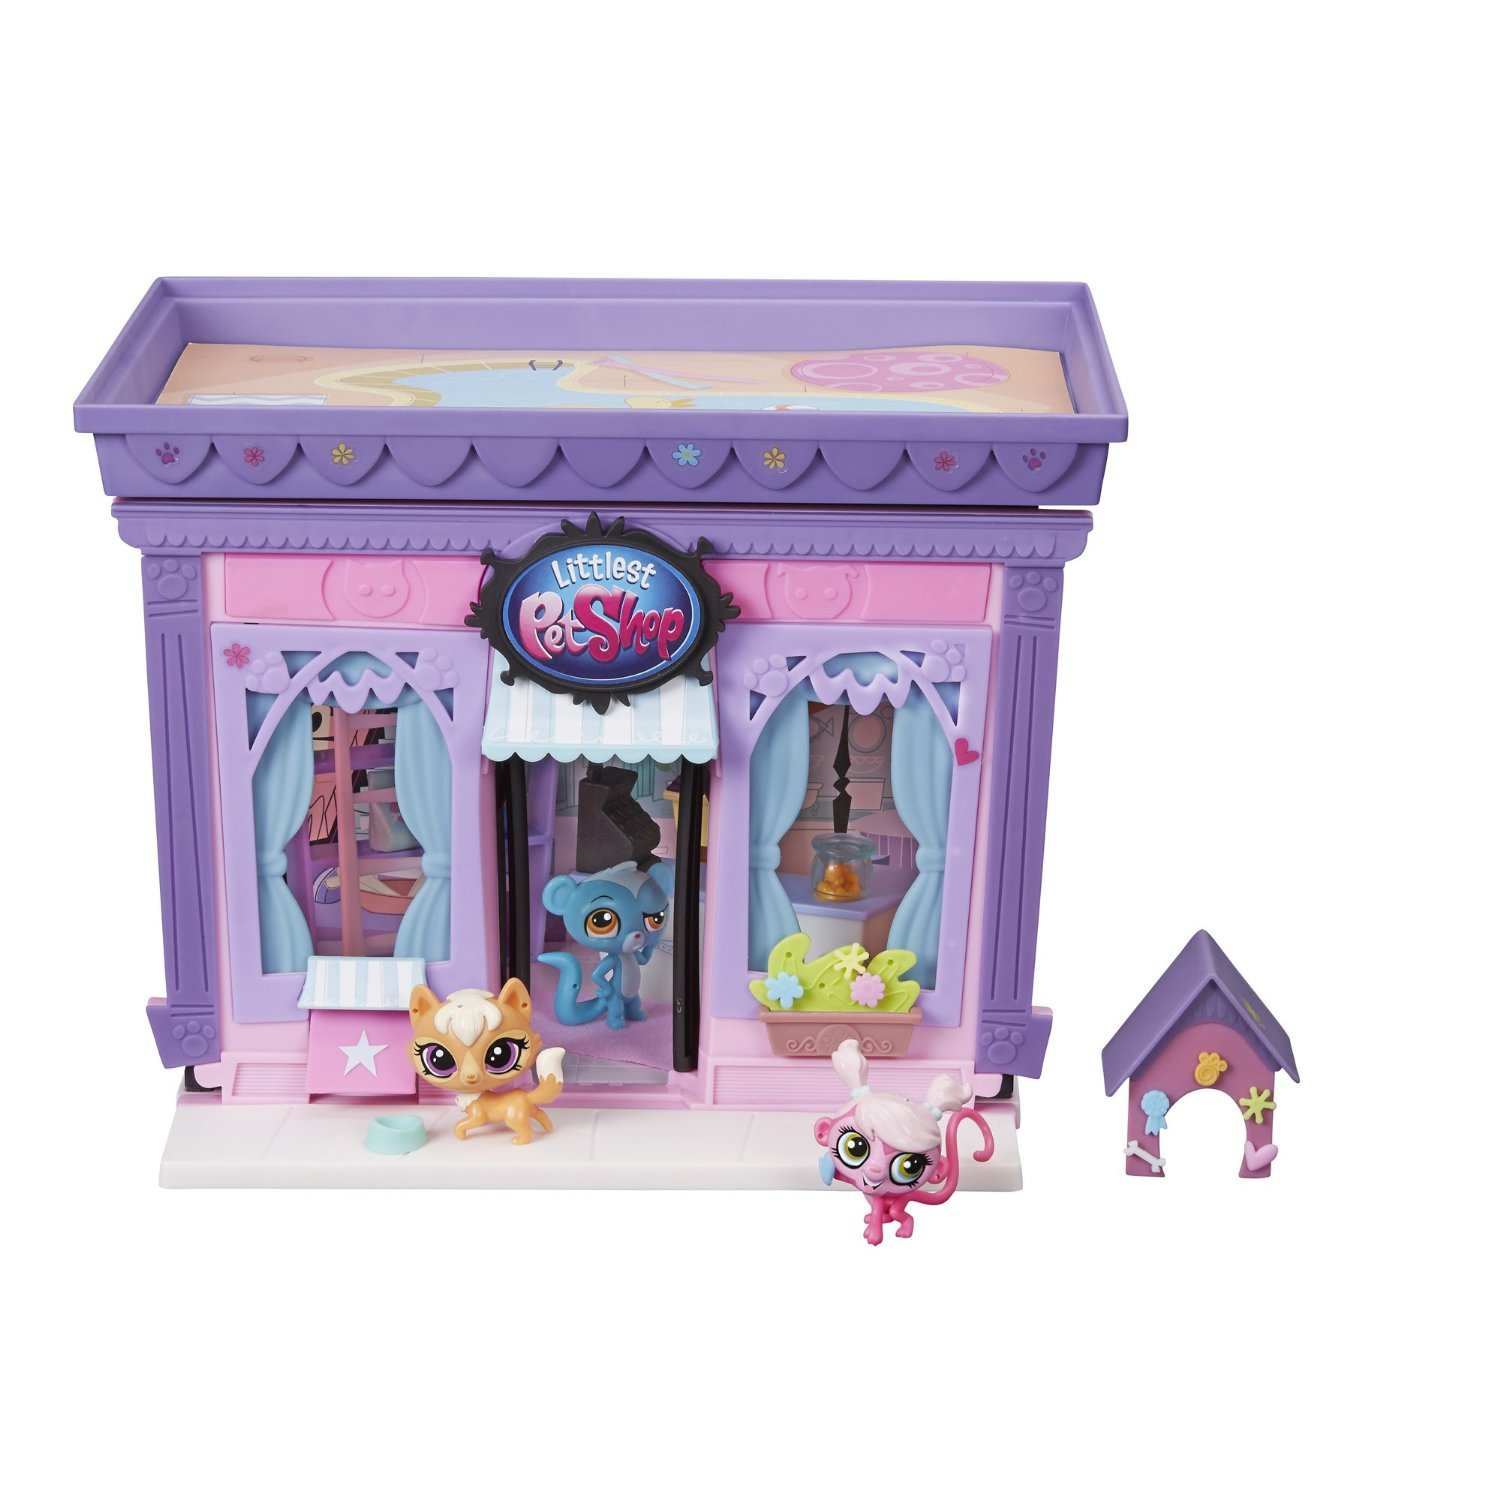 Littlest Pet Shop Style Set Only 16 75 Lowest Price